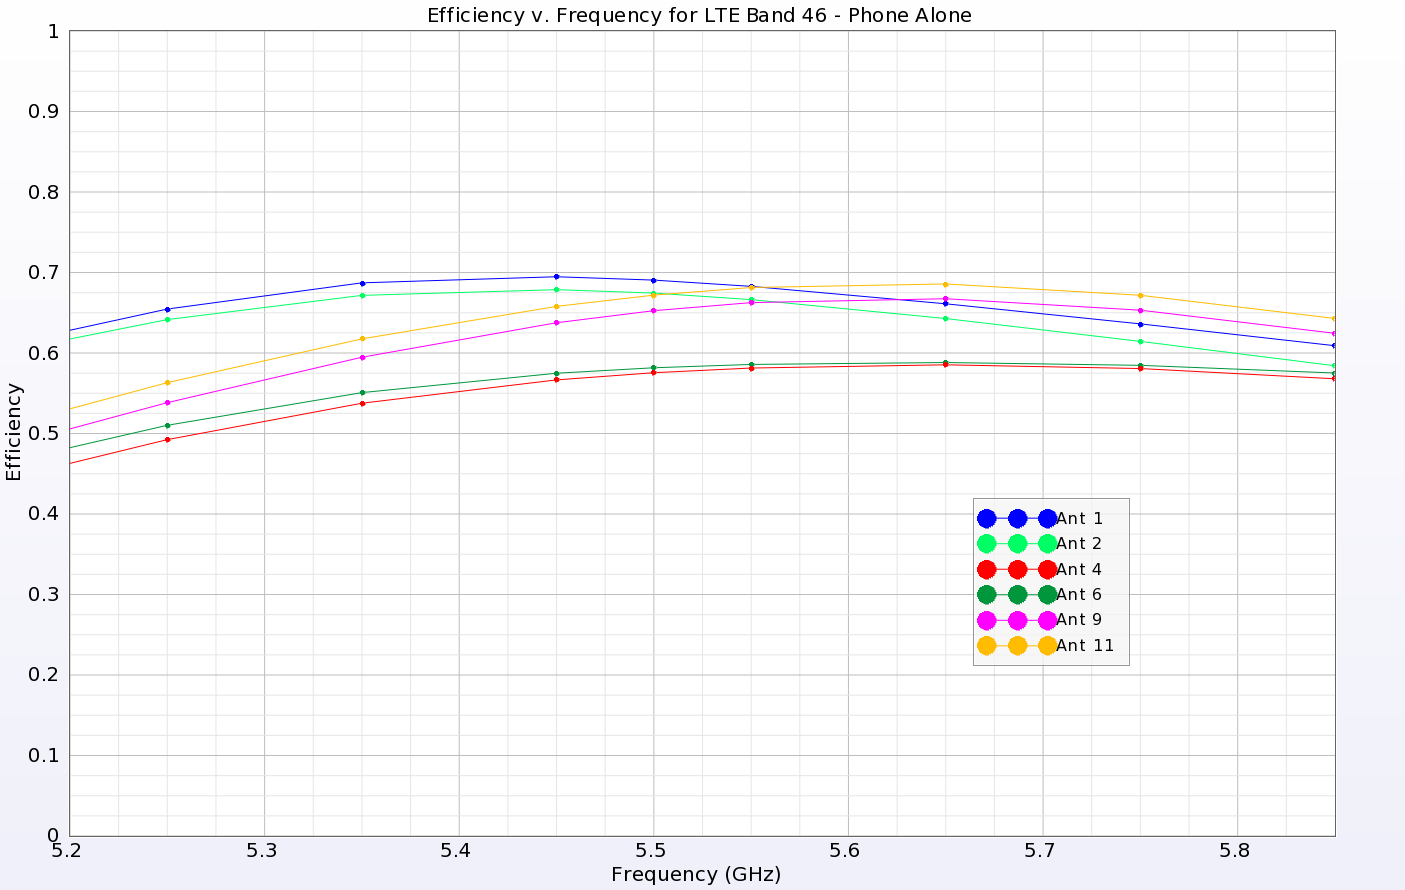 Figure 9: The efficiencies for all antennas in the higher LTE 46 band are above about 50% and show good performance.